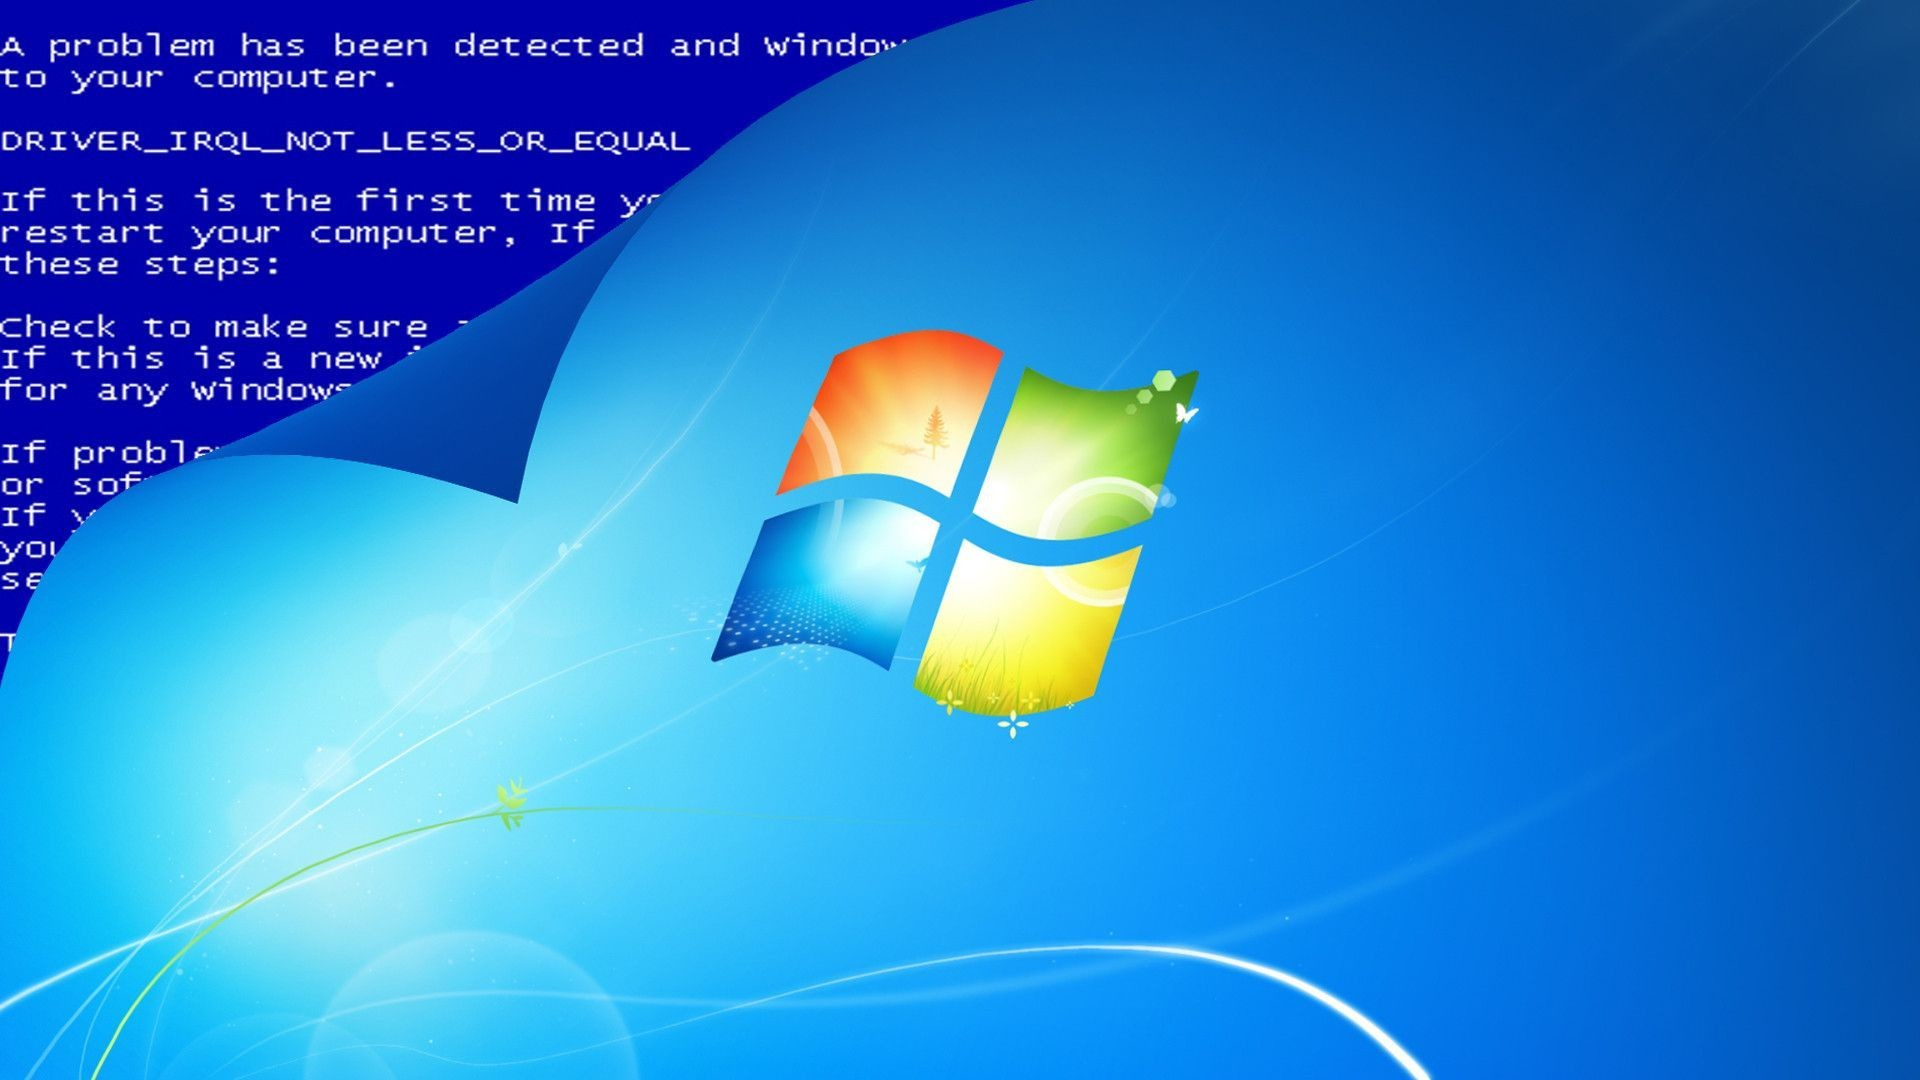 Funny Windows Backgrounds 56 images 1920x1080